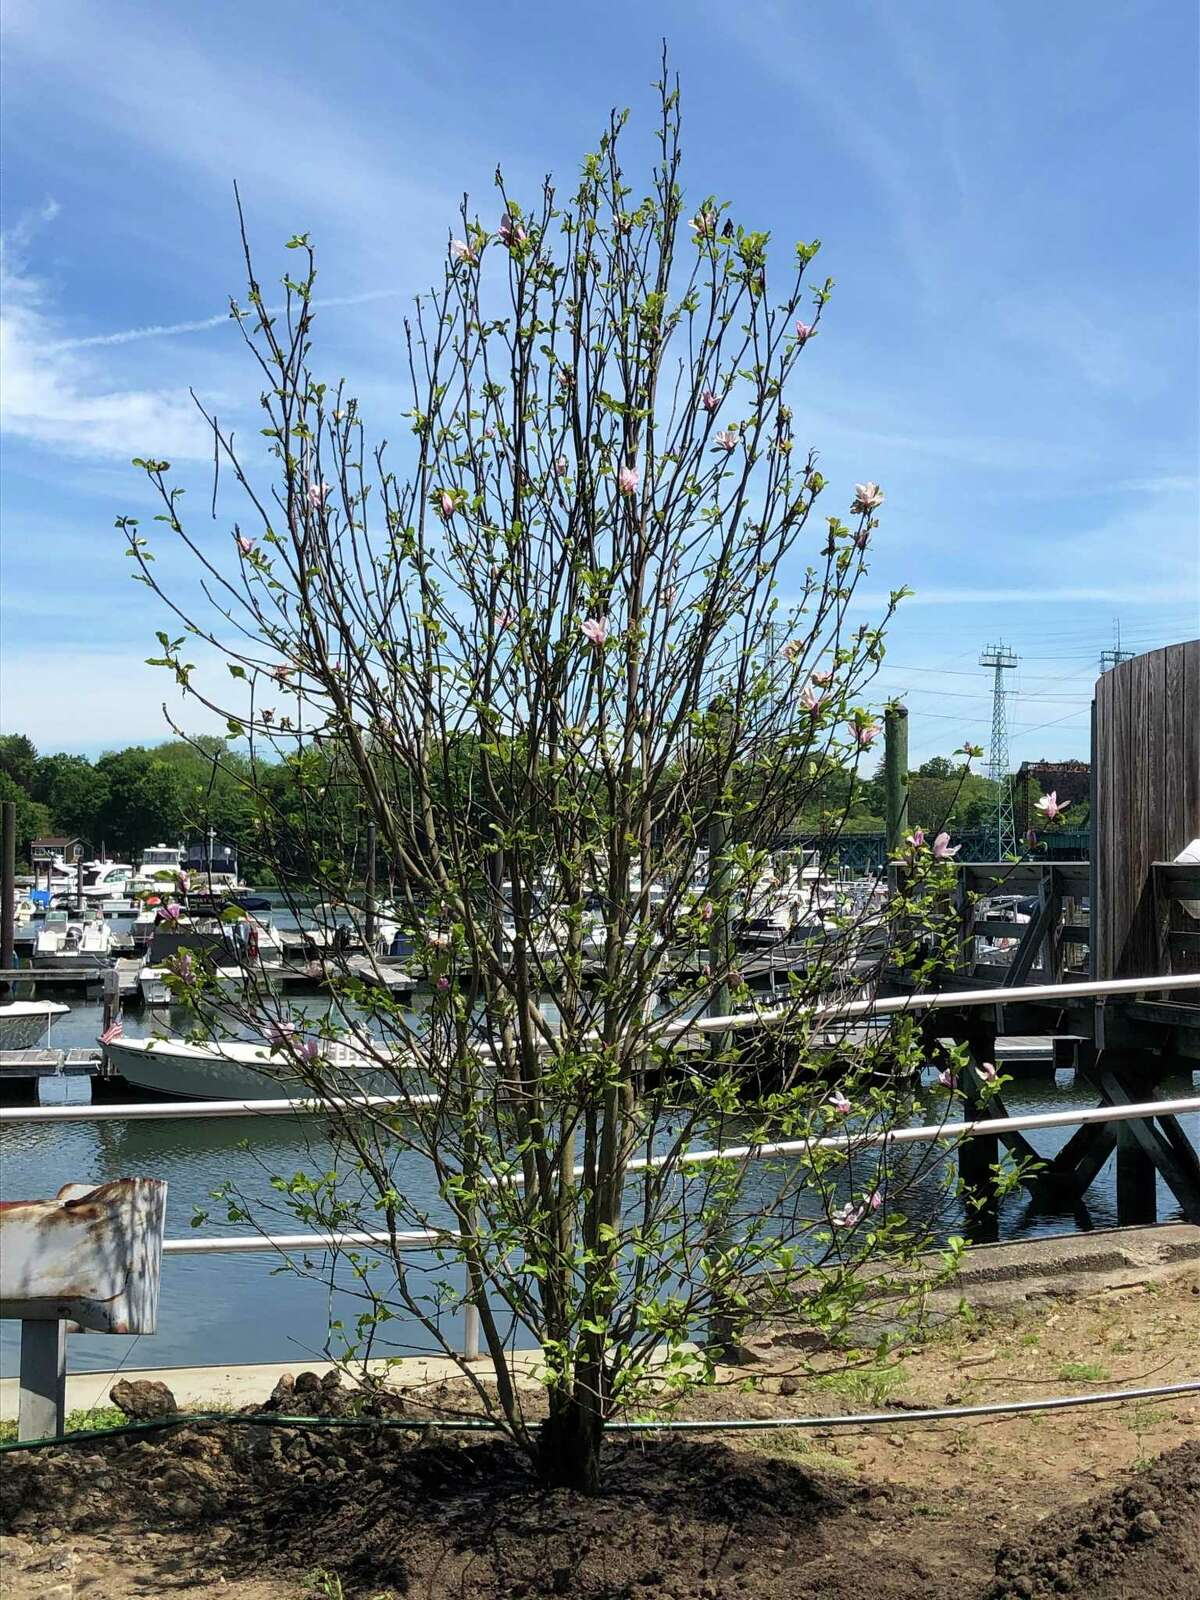 The Greenwich Tree Conservancy is continuing its work planting trees in town parking lots. The Cos Cob Marina parking lot has recently gotten several trees in it, including the one above, with more targeted for next spring.